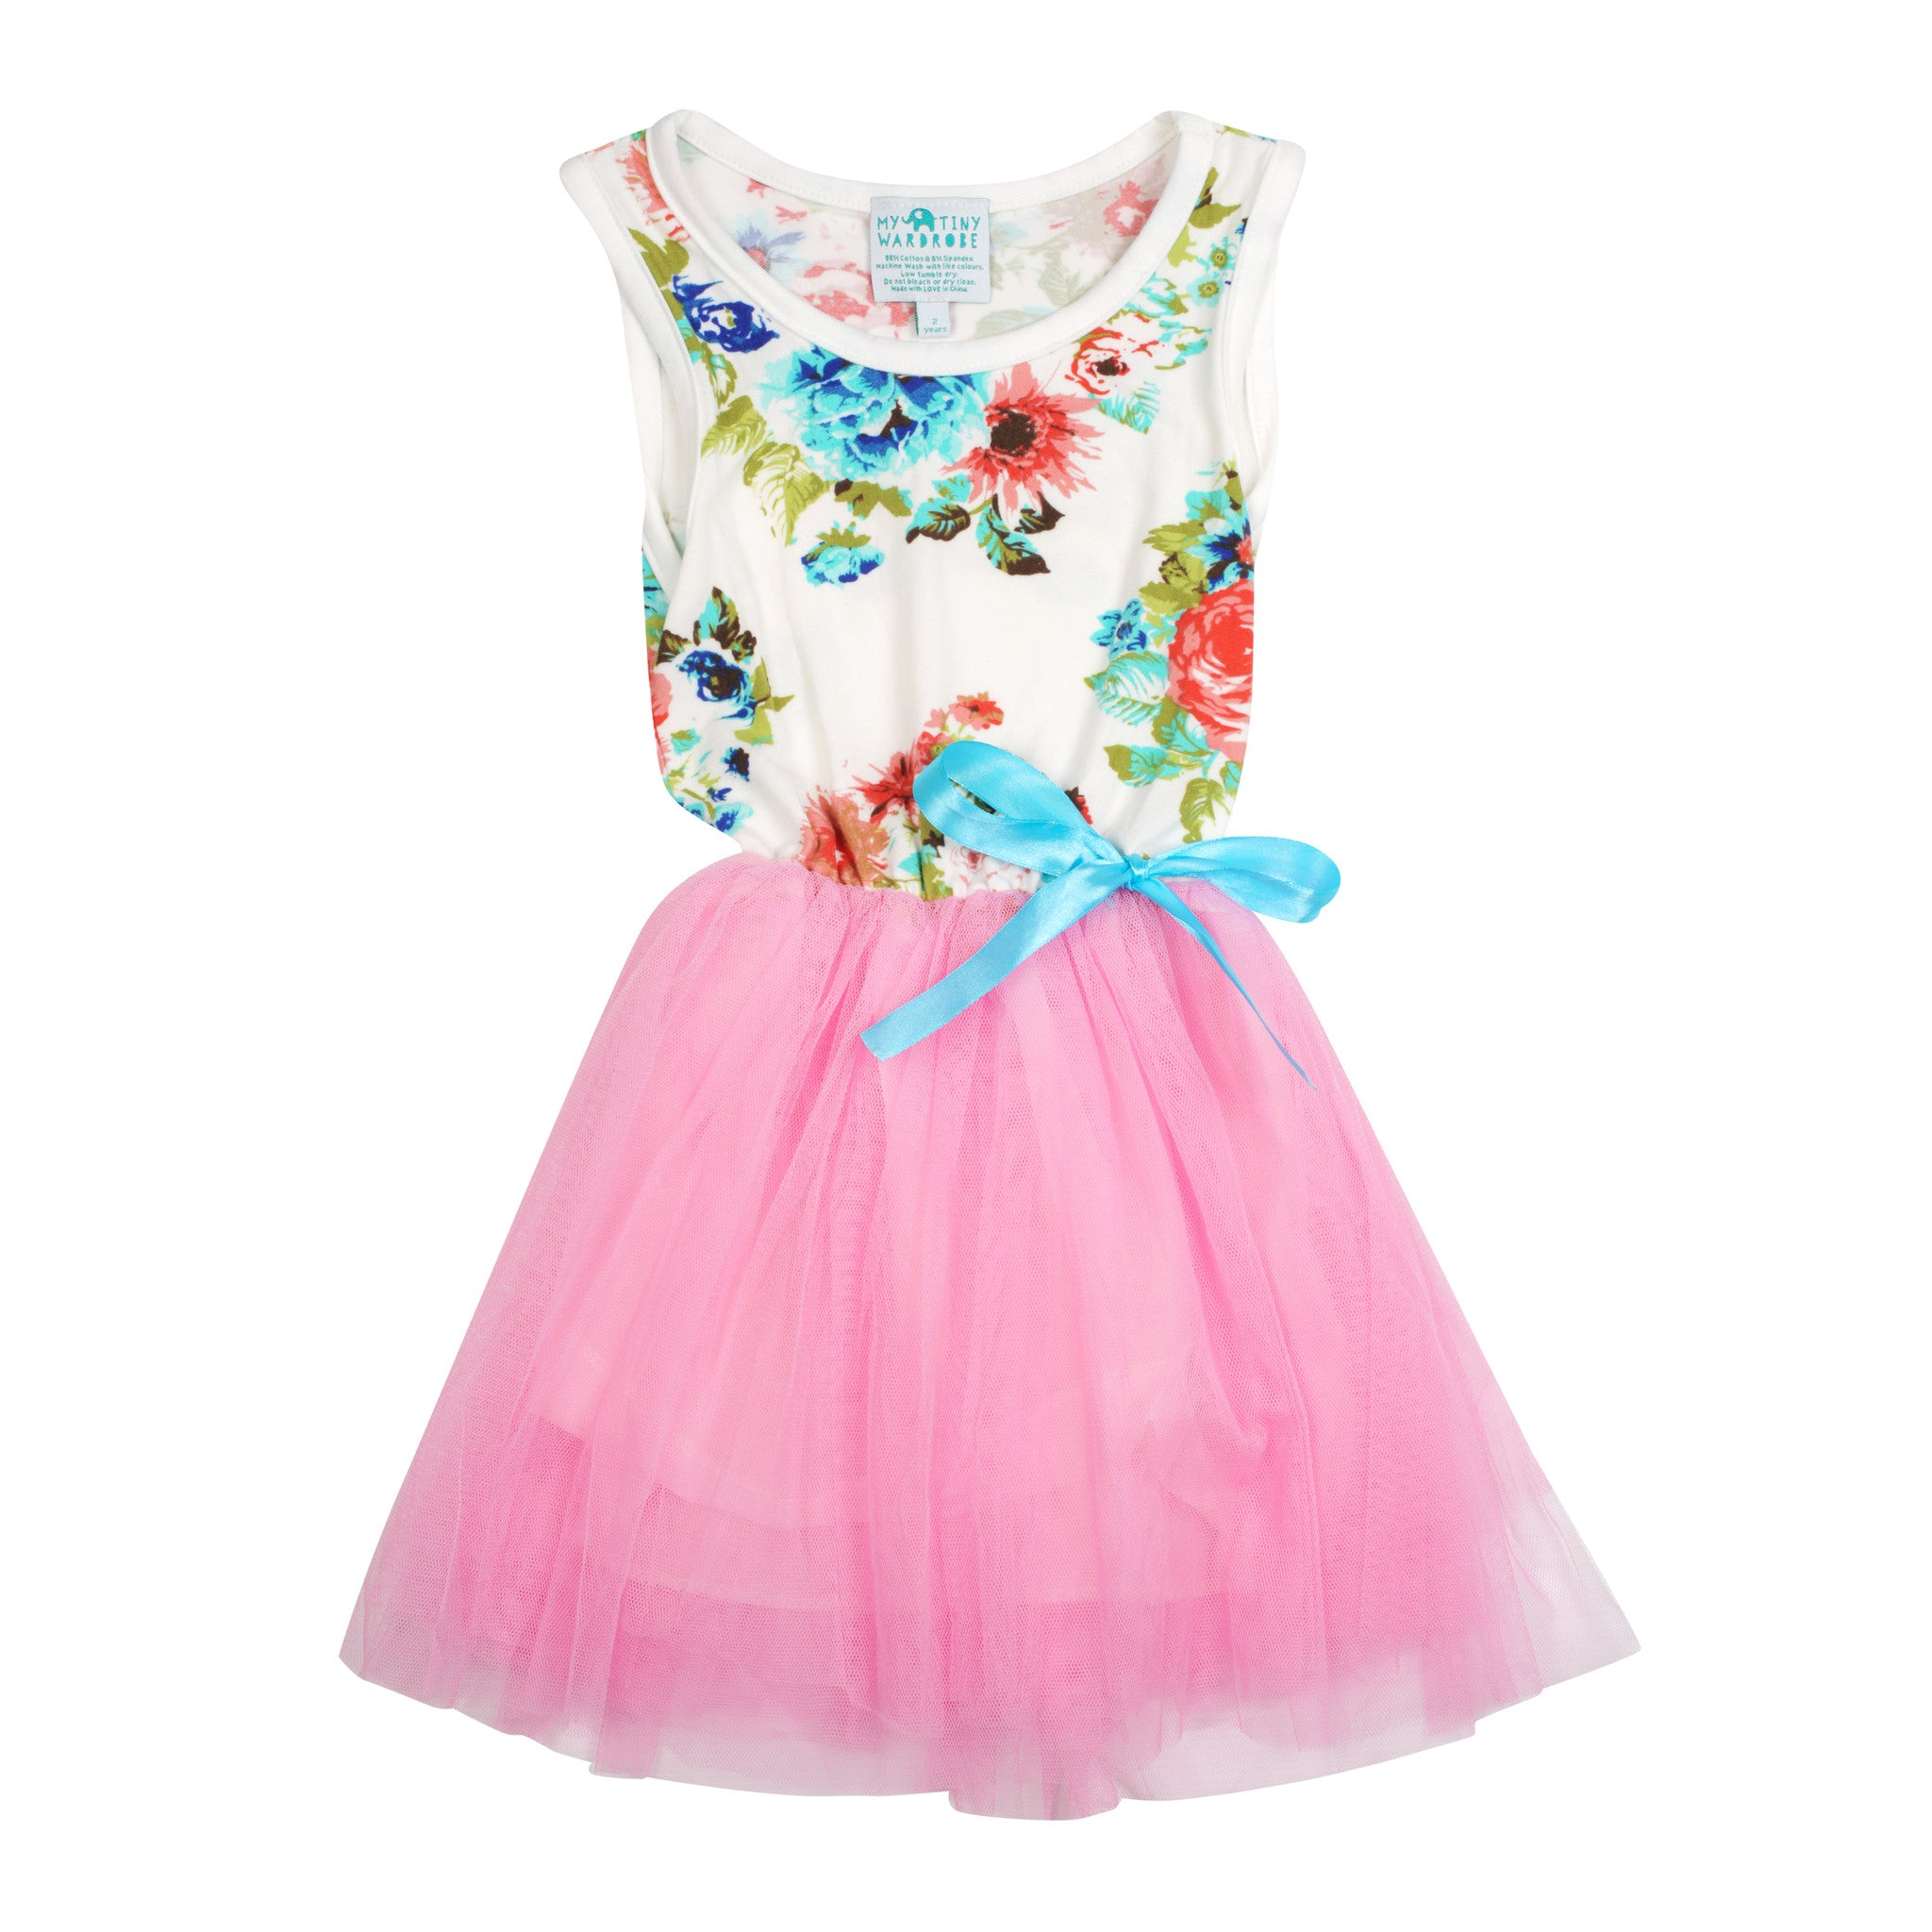 Twirling Tutu Dress – Pink